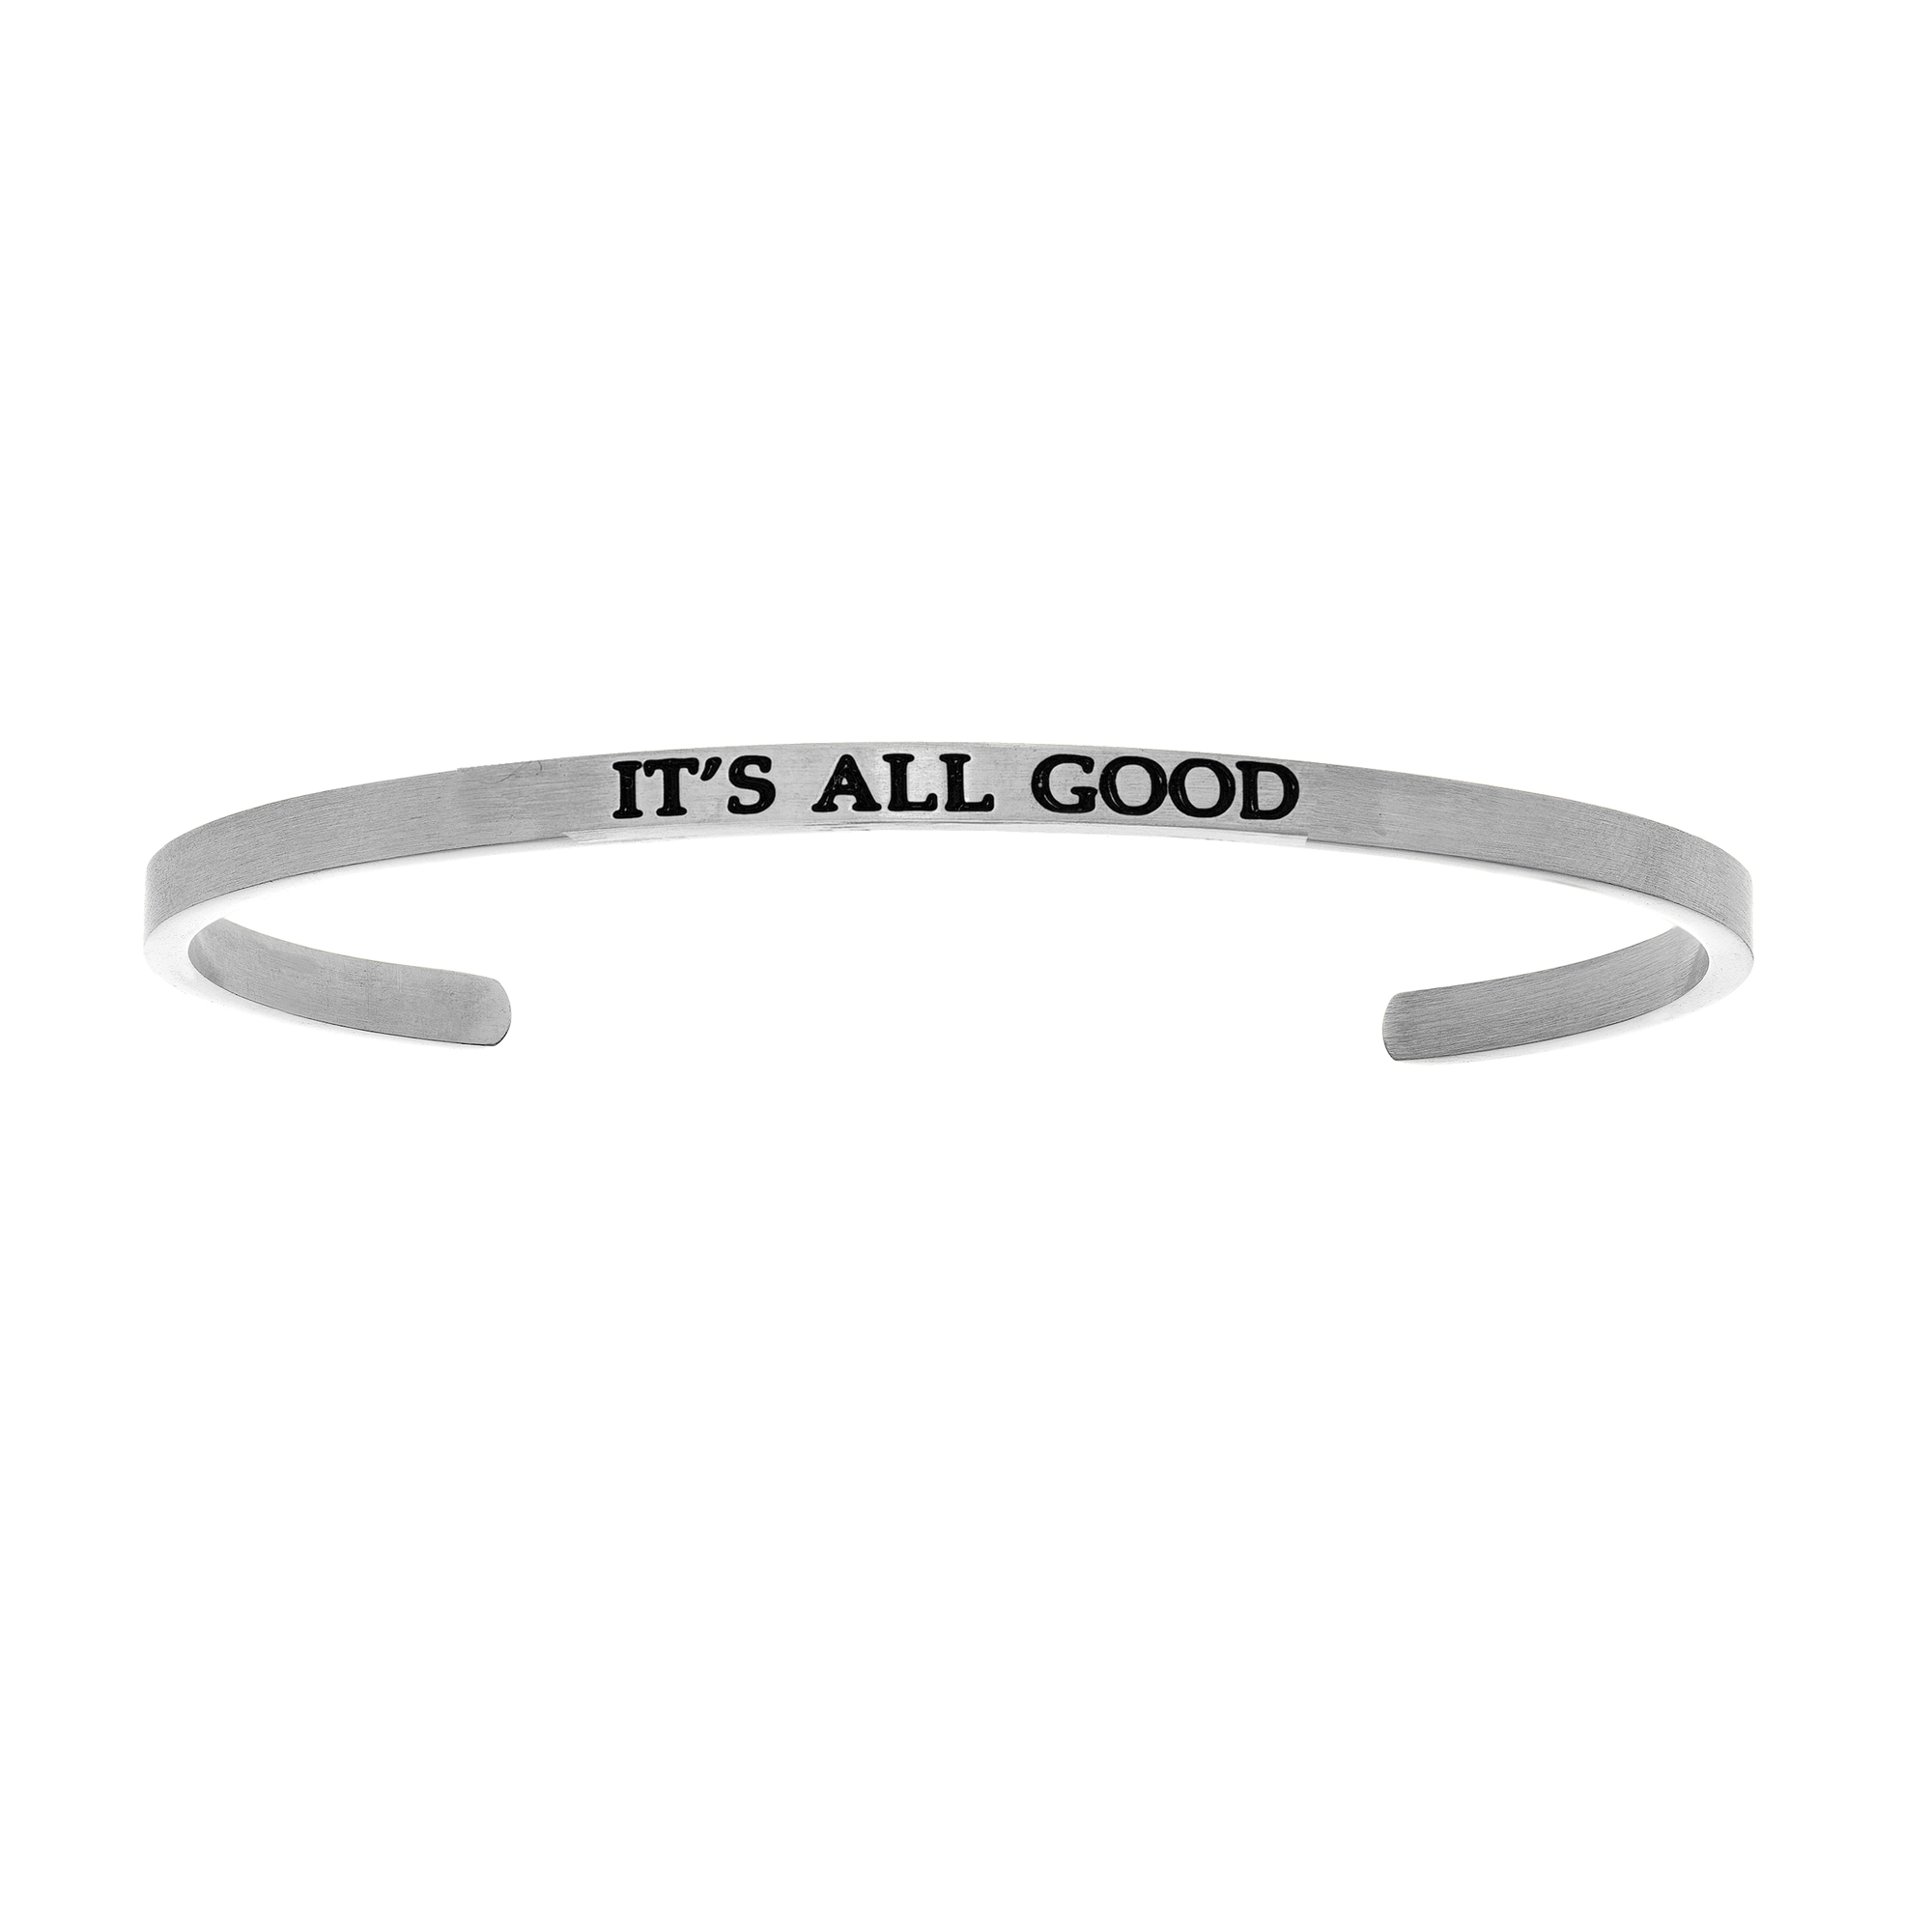 Intuitions Stainless Steel IT'S ALL GOOD Diamond Accent Cuff  Bangle Bracelet, 7  Each of these bracelets carries a personal message of inspiration, spirituality or just plain fun. Meant to be worn alone or stacked together for a smart, contemporary look, they're a great self-purchase or as a gift for family or friends. Intuitions are made of stainless steel and come in two styles standard cuff or friendship and fit practically any wrist. Intuitions Jewelry makes the difference in your daily life by designing and creating bracelets and bangles with motivational quotes to inspire you and your loved ones. Giving back $.25 of each bracelet to BABY2BABY